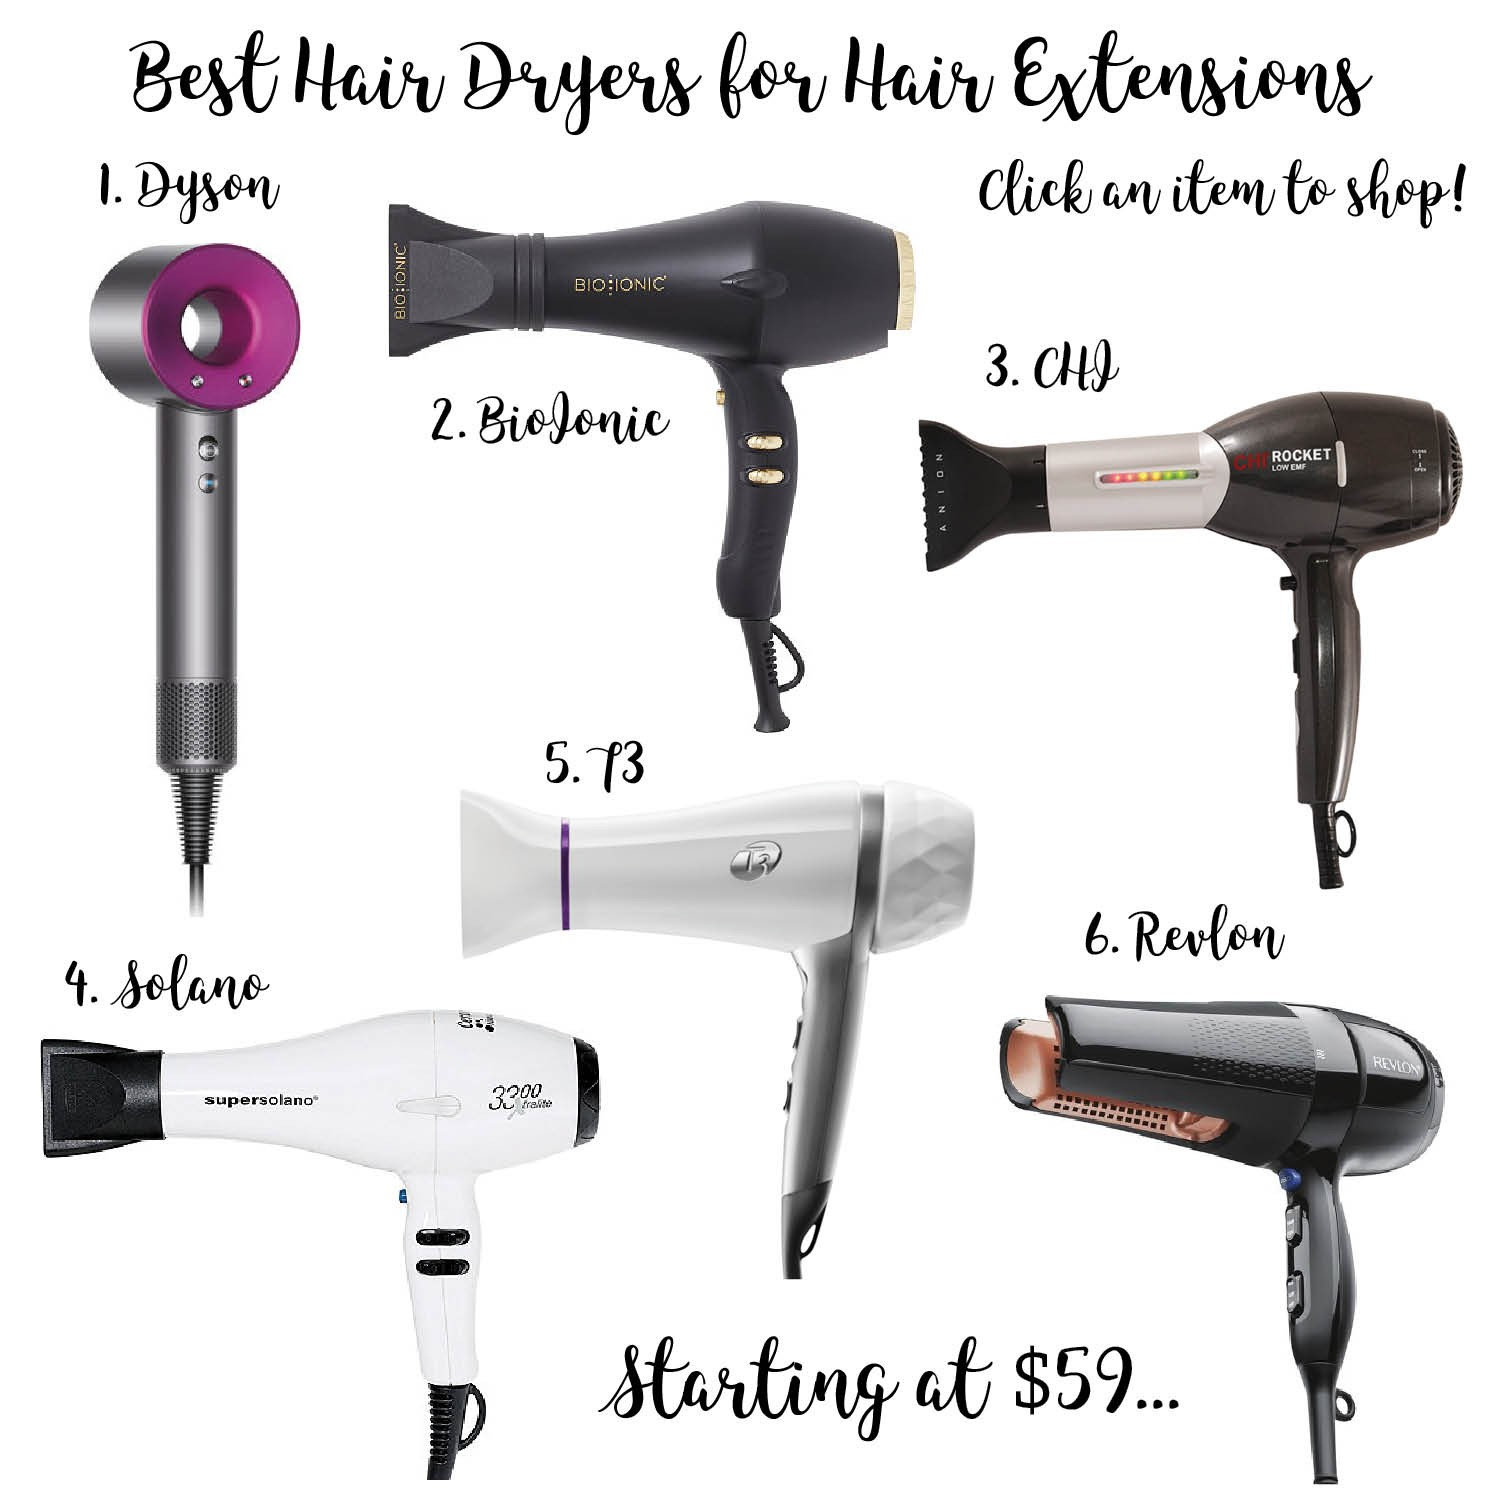 6 Best Hair Dryers For Hair Extensions Review Dressed To Kill